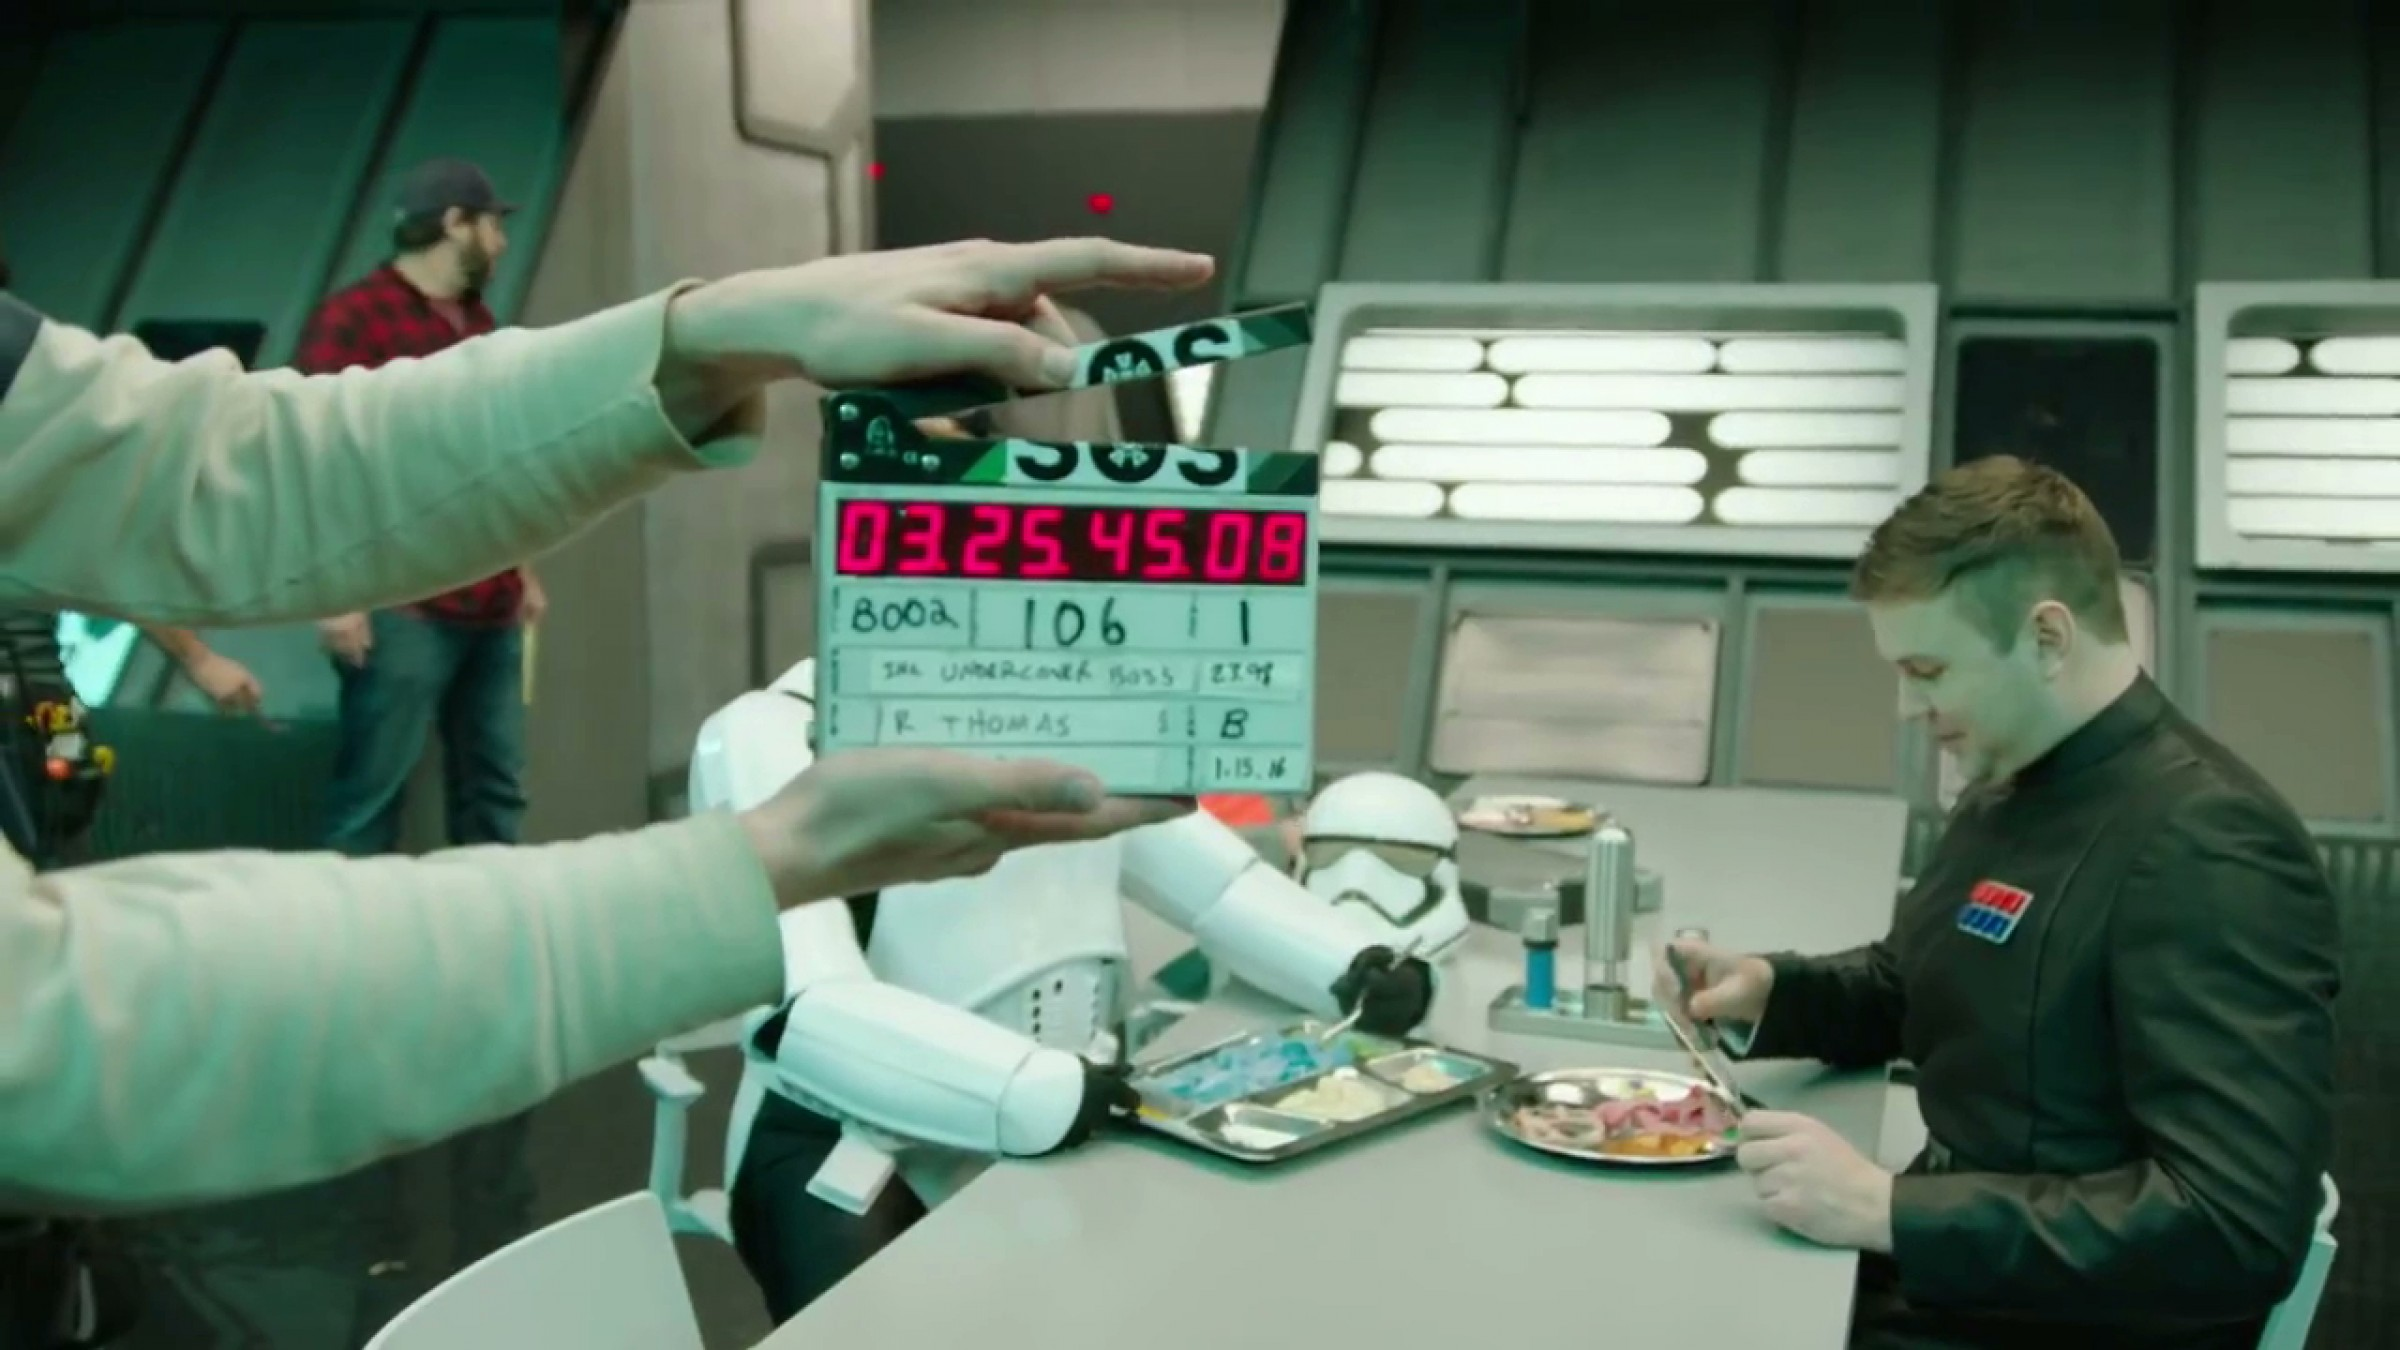 Candid Camera Star Wars : Behind the scenes of snl s hilarious star wars undercover boss